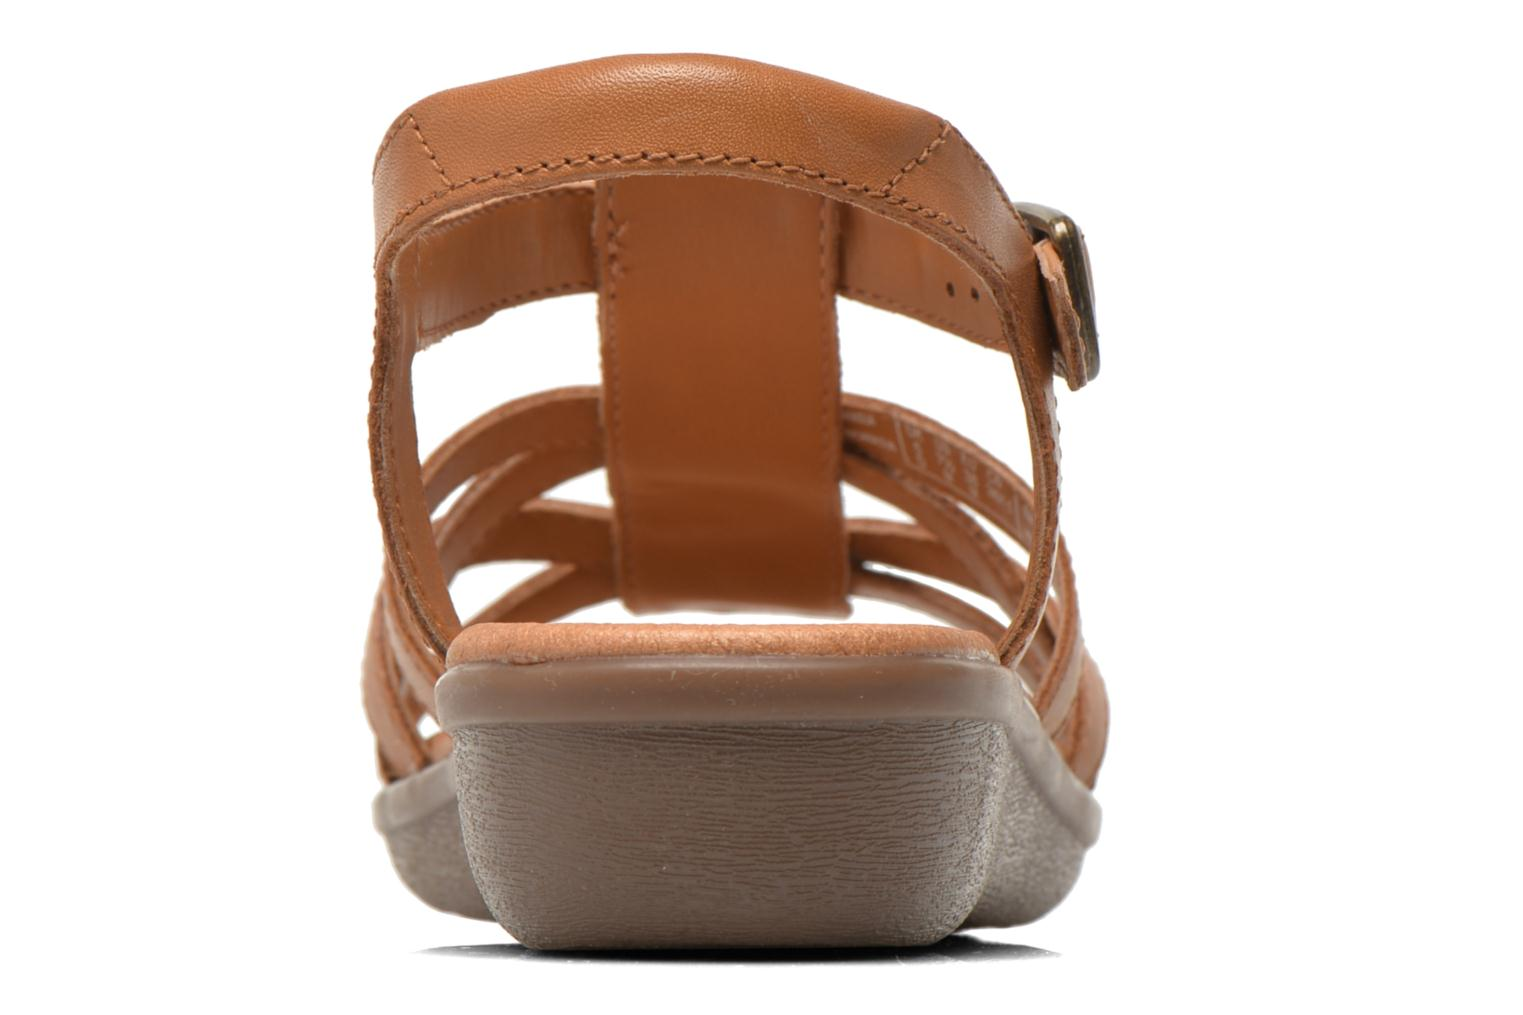 Manilla Bonita Tan Leather